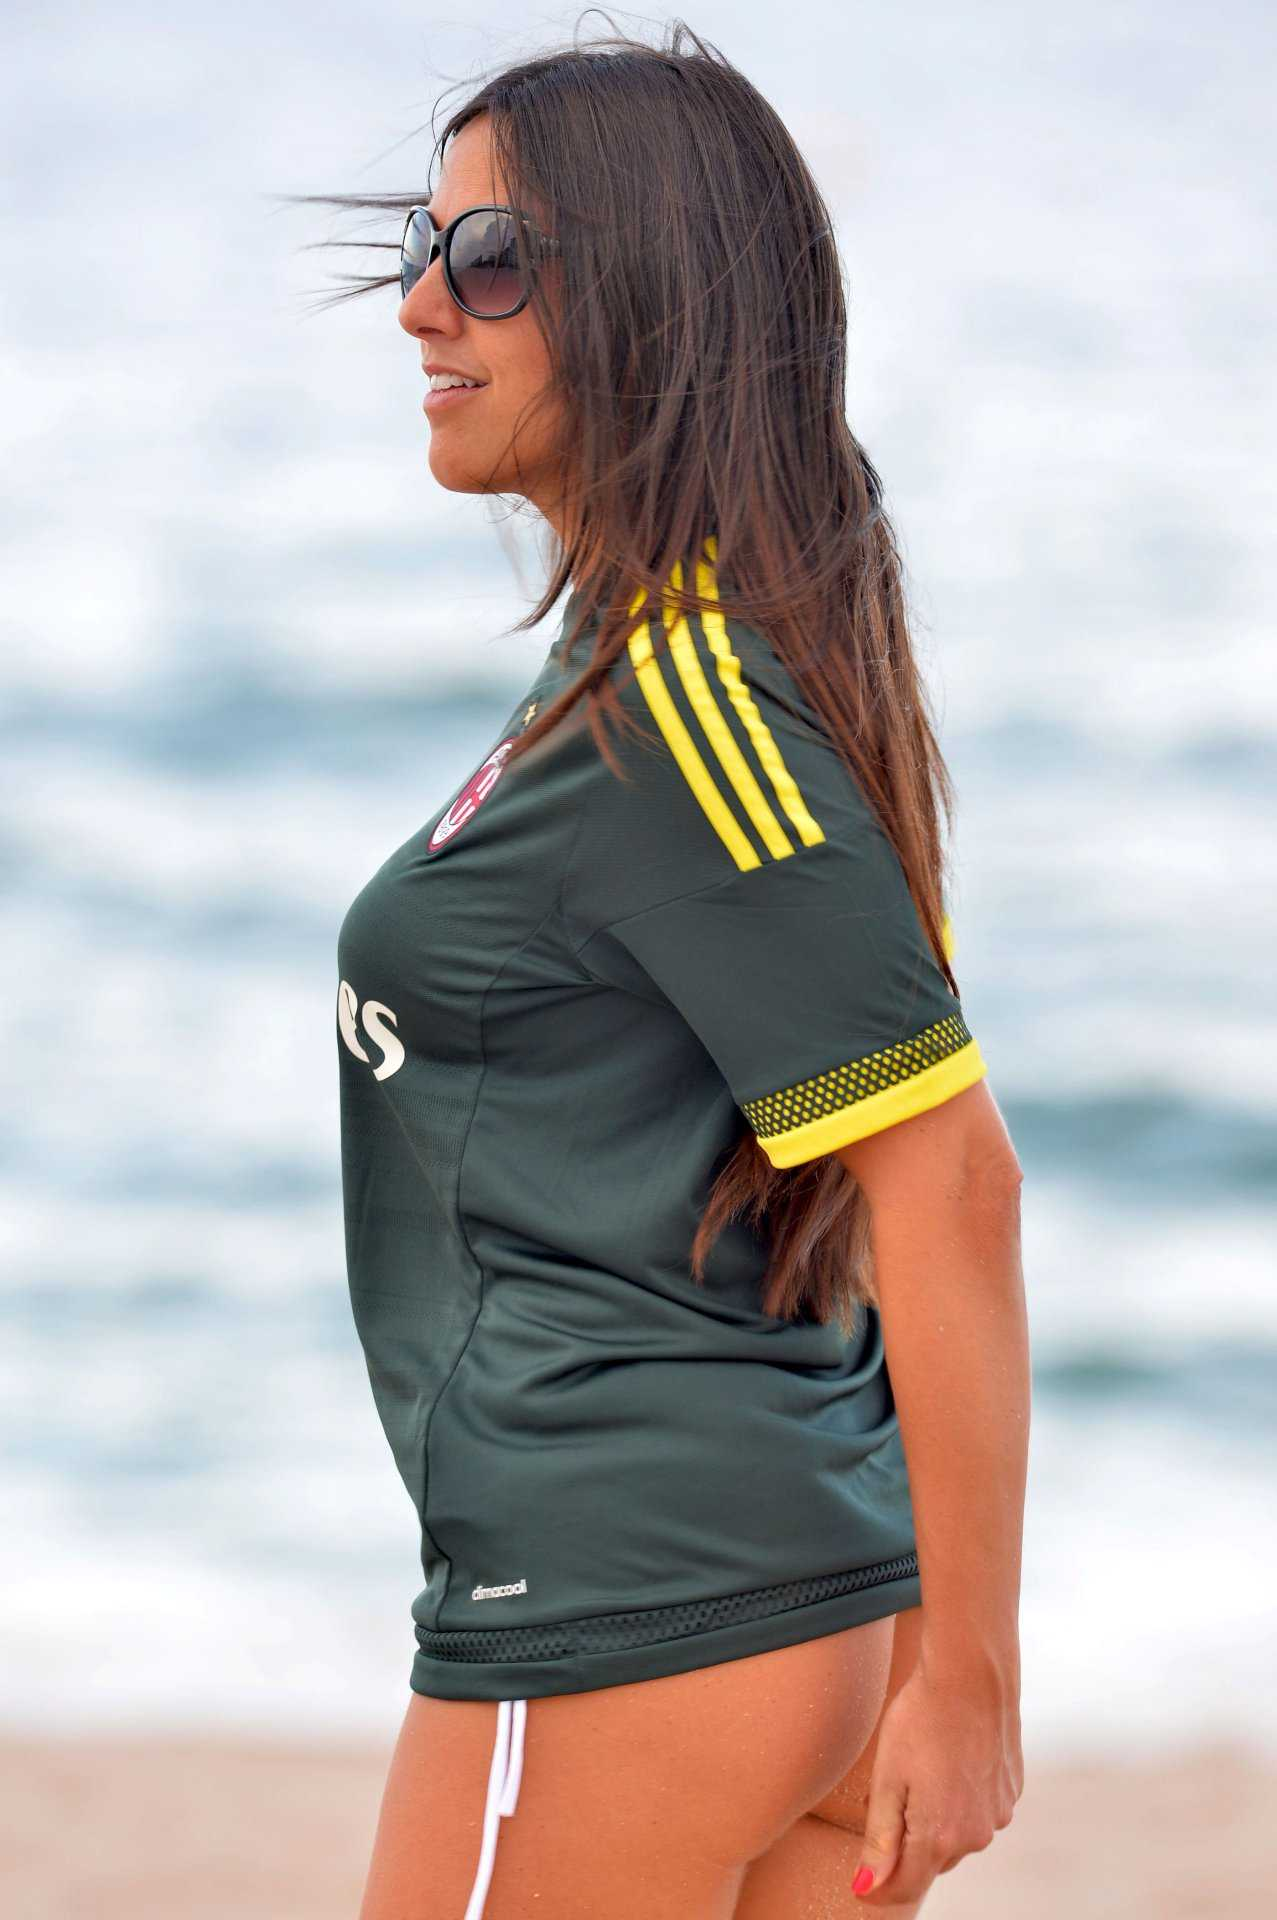 Claudia Romani 515 SAWFIRST Hot Celebrity Pictures